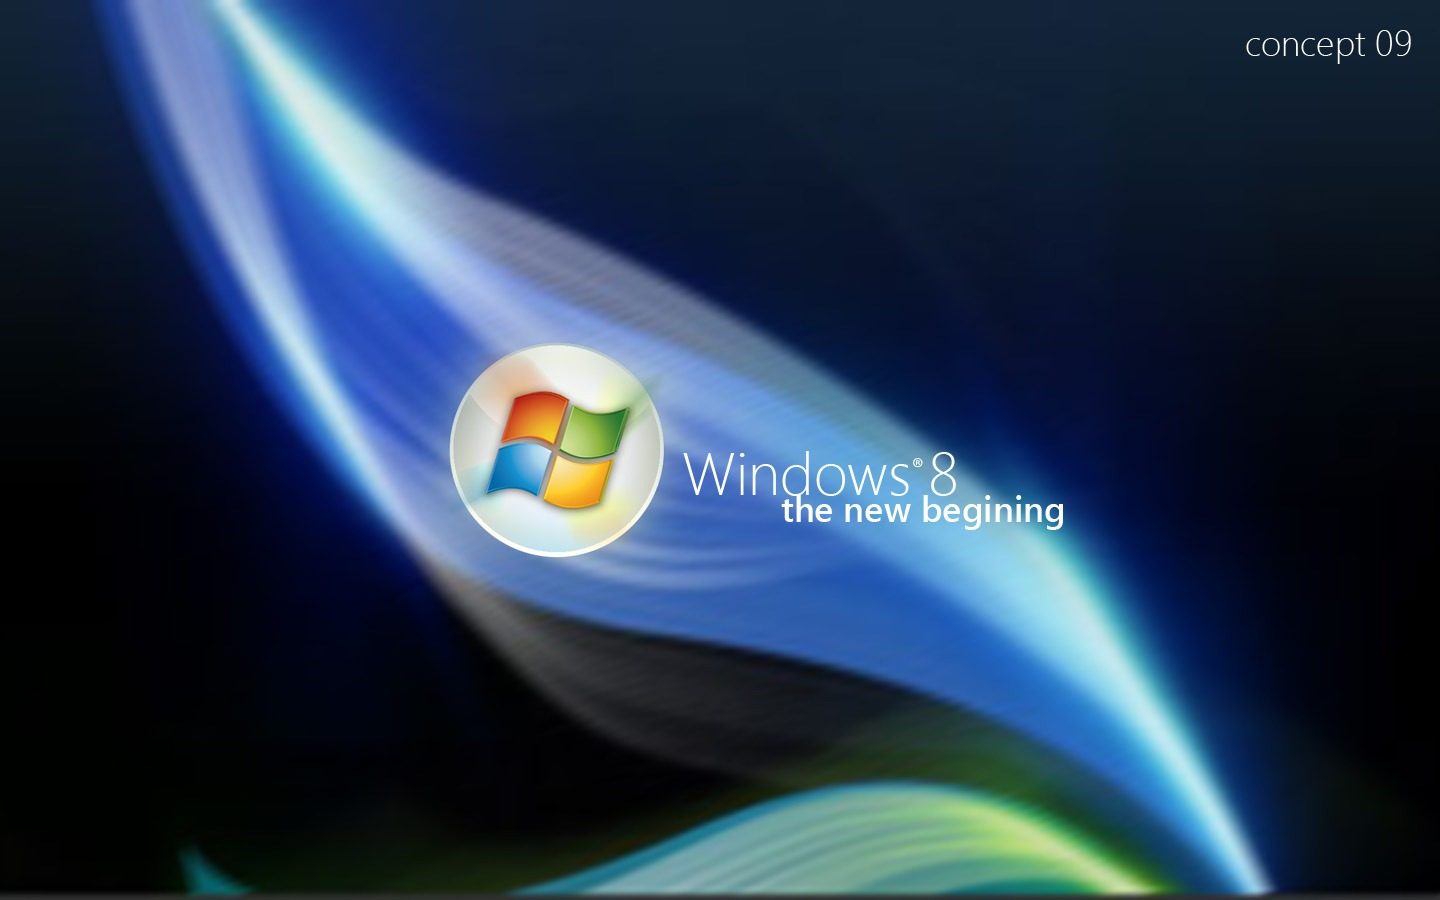 what is a window 8 and Windows wallpapers - windows desktop wallpapers  1920 x 1080 - 1259k - png 89 hd wallpapers 1080p windows 8 1920 x 1080 - 722k - jpg 142 windows 8 wallpaper black.